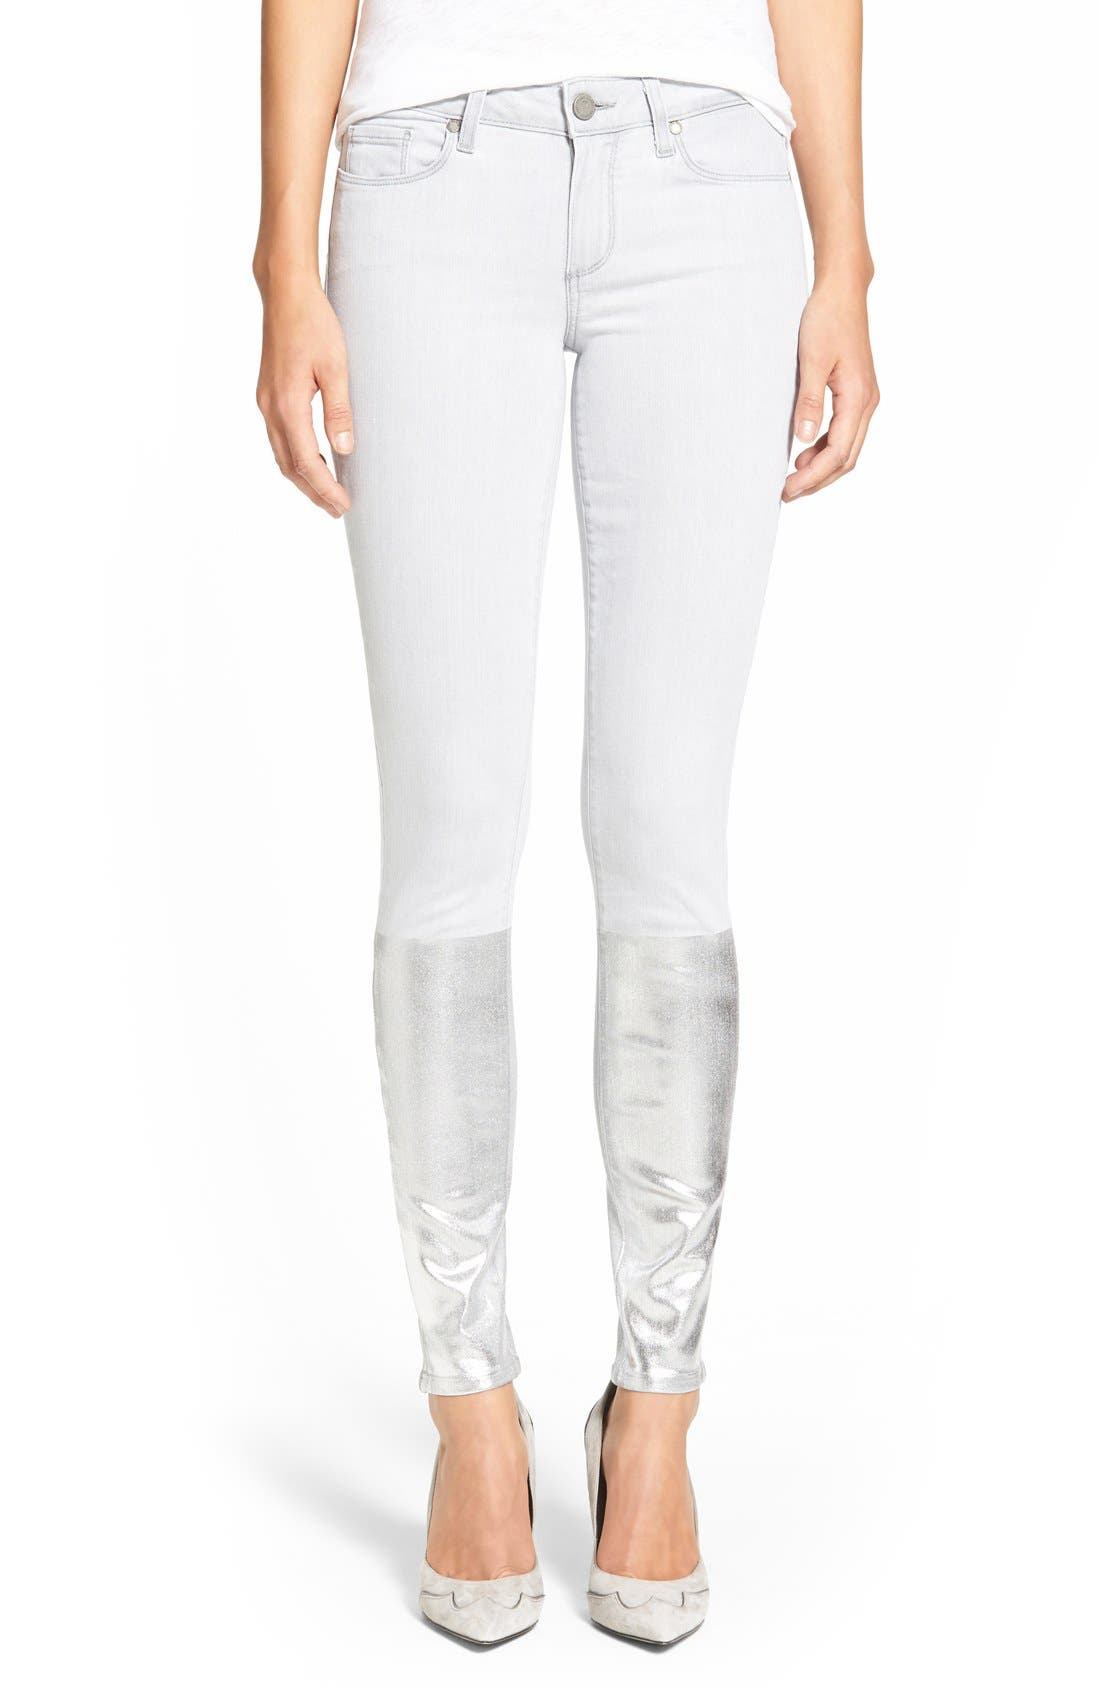 Main Image - PaigeDenim 'Verdugo' Ankle Ultra Skinny Jeans (Light Grey/Silver Solstice)